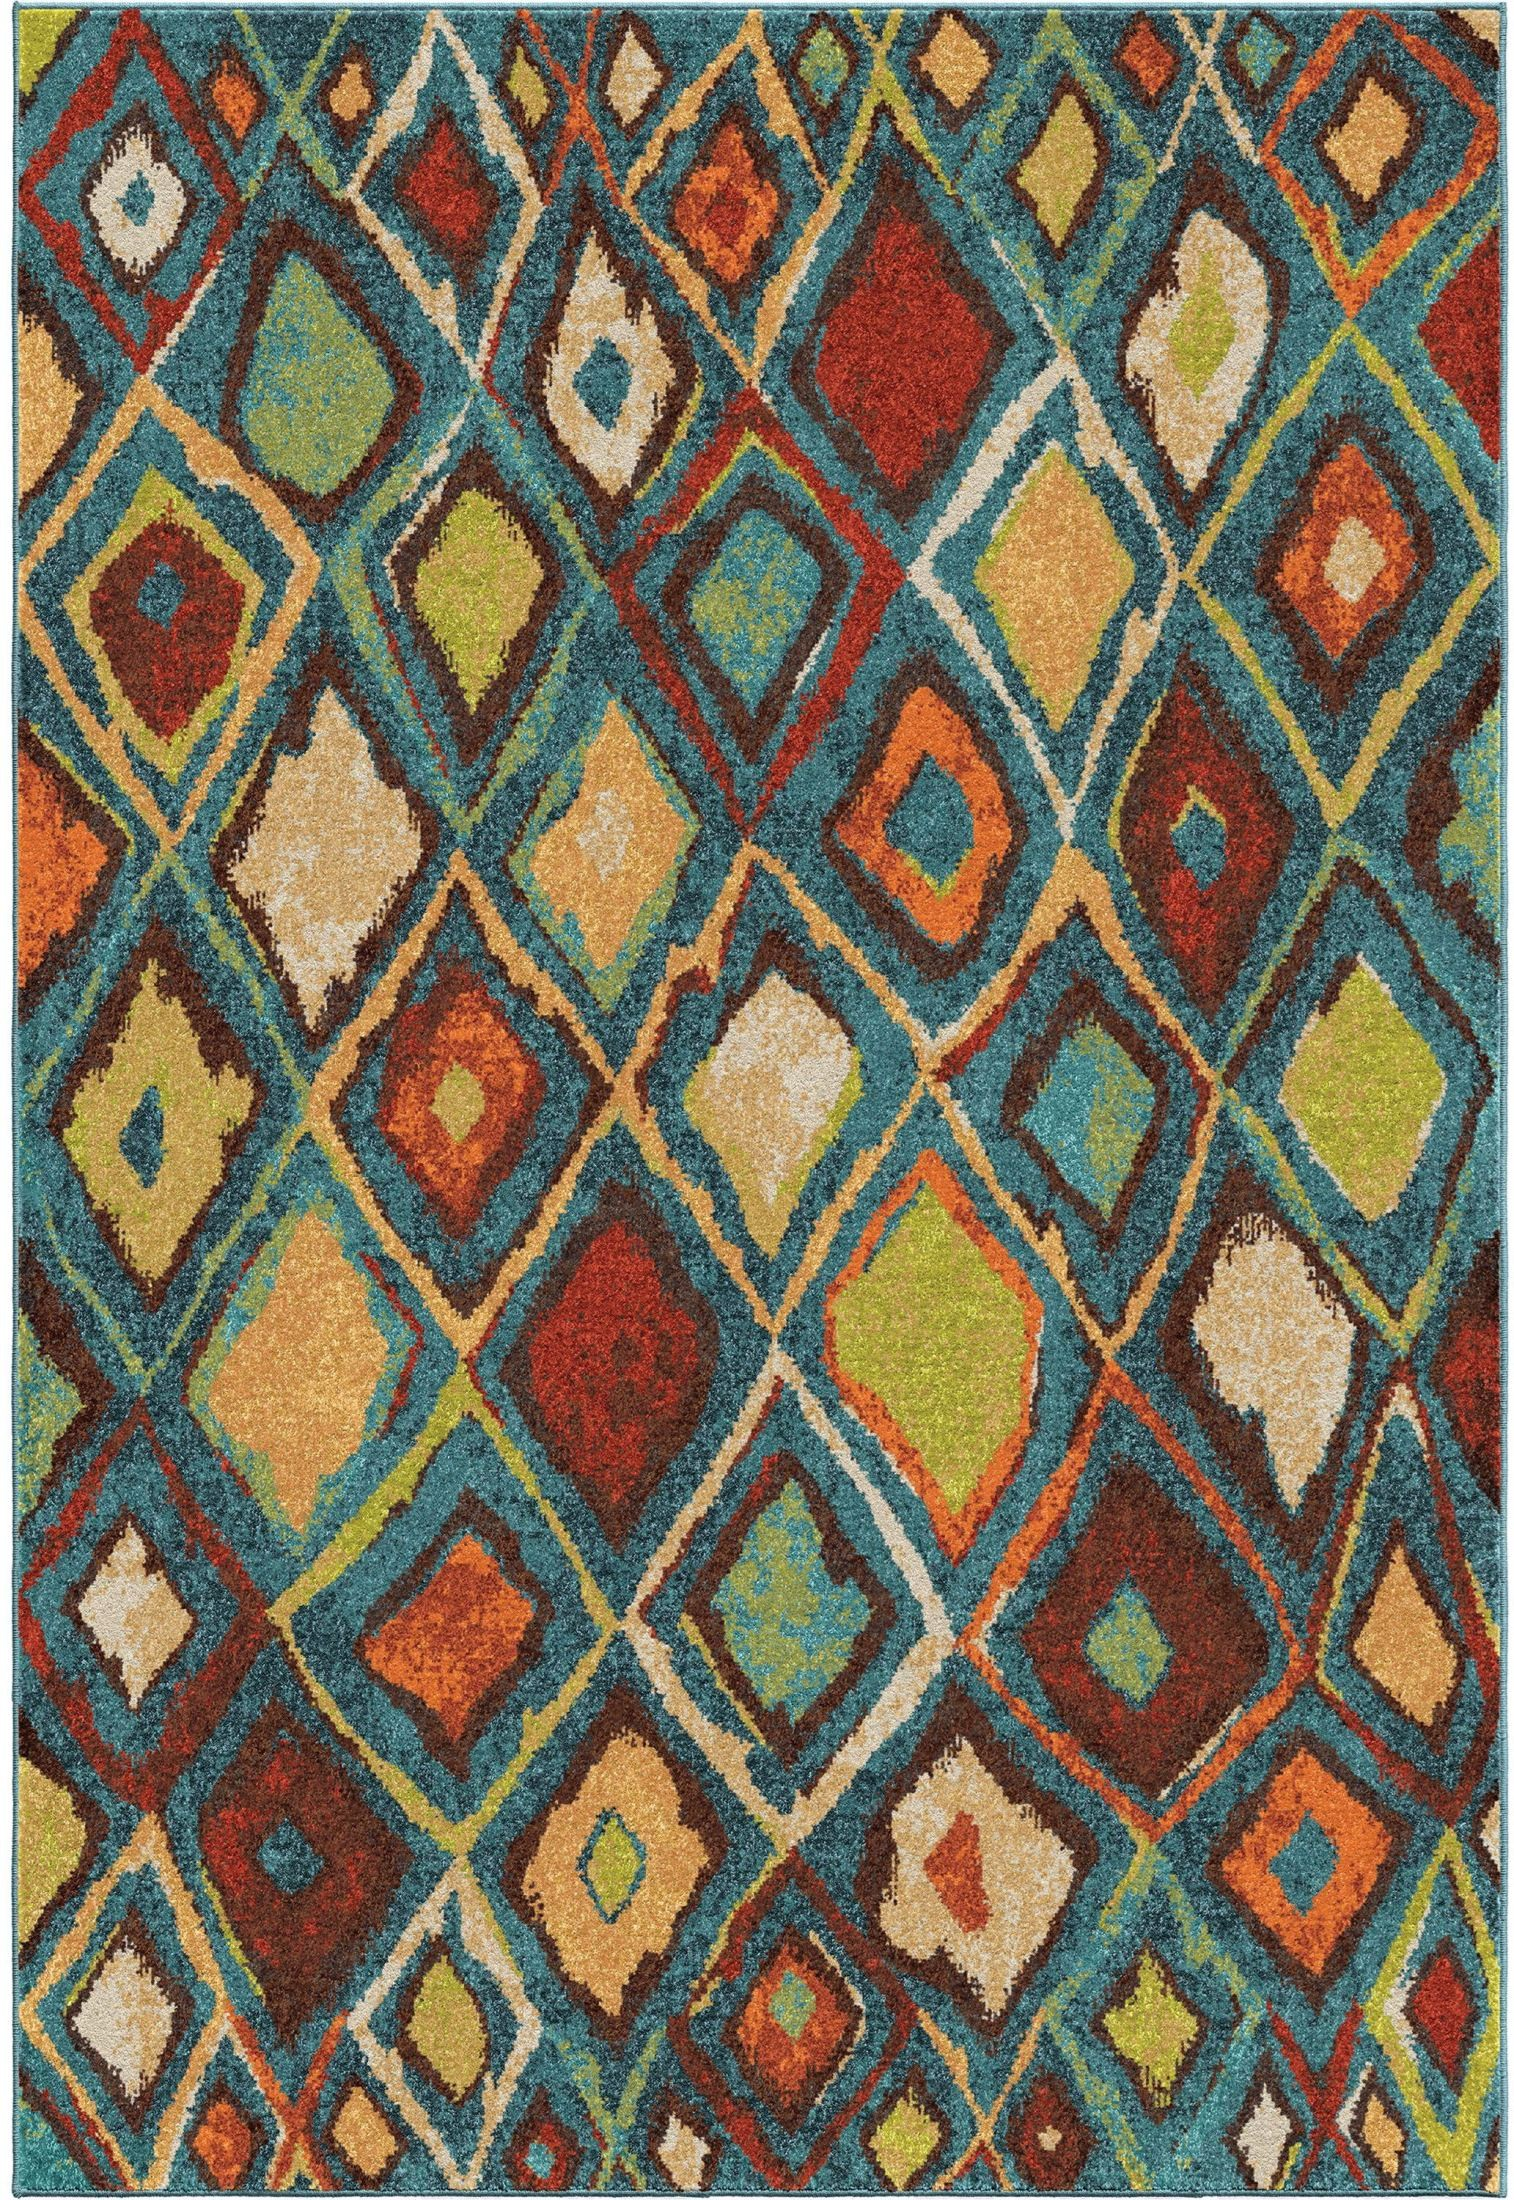 Spoleto Bright Diamonds Nablis Blue Small Area Rug From